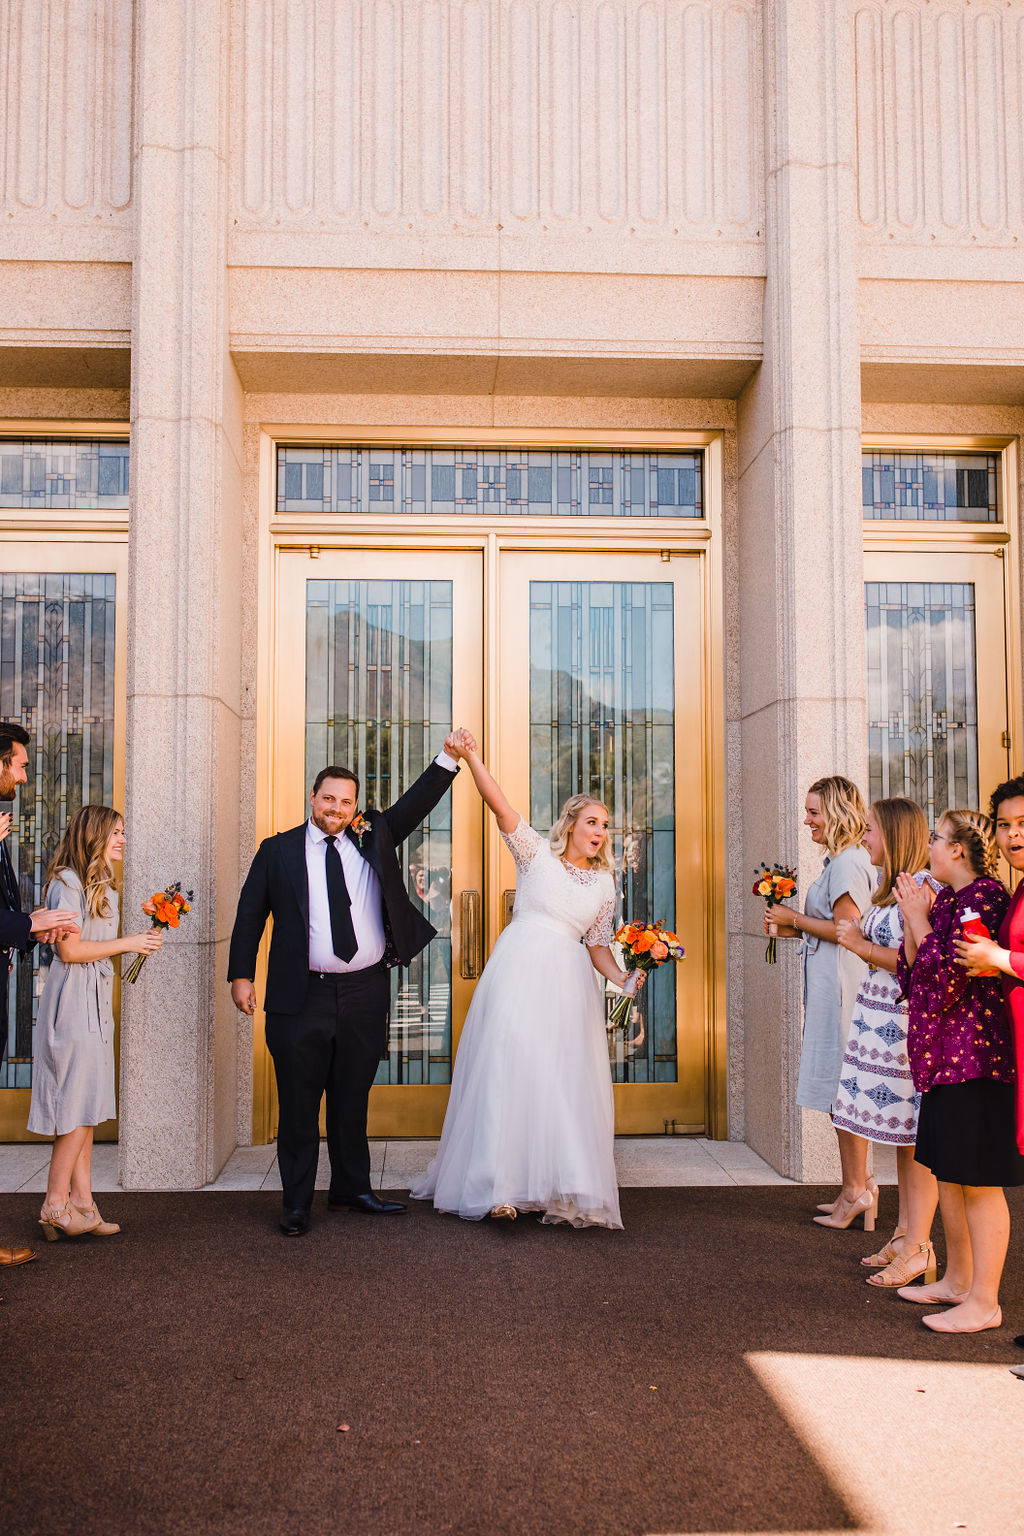 wedding exit holding hands cheering happy orange bouquet professional wedding photographer ogden utah